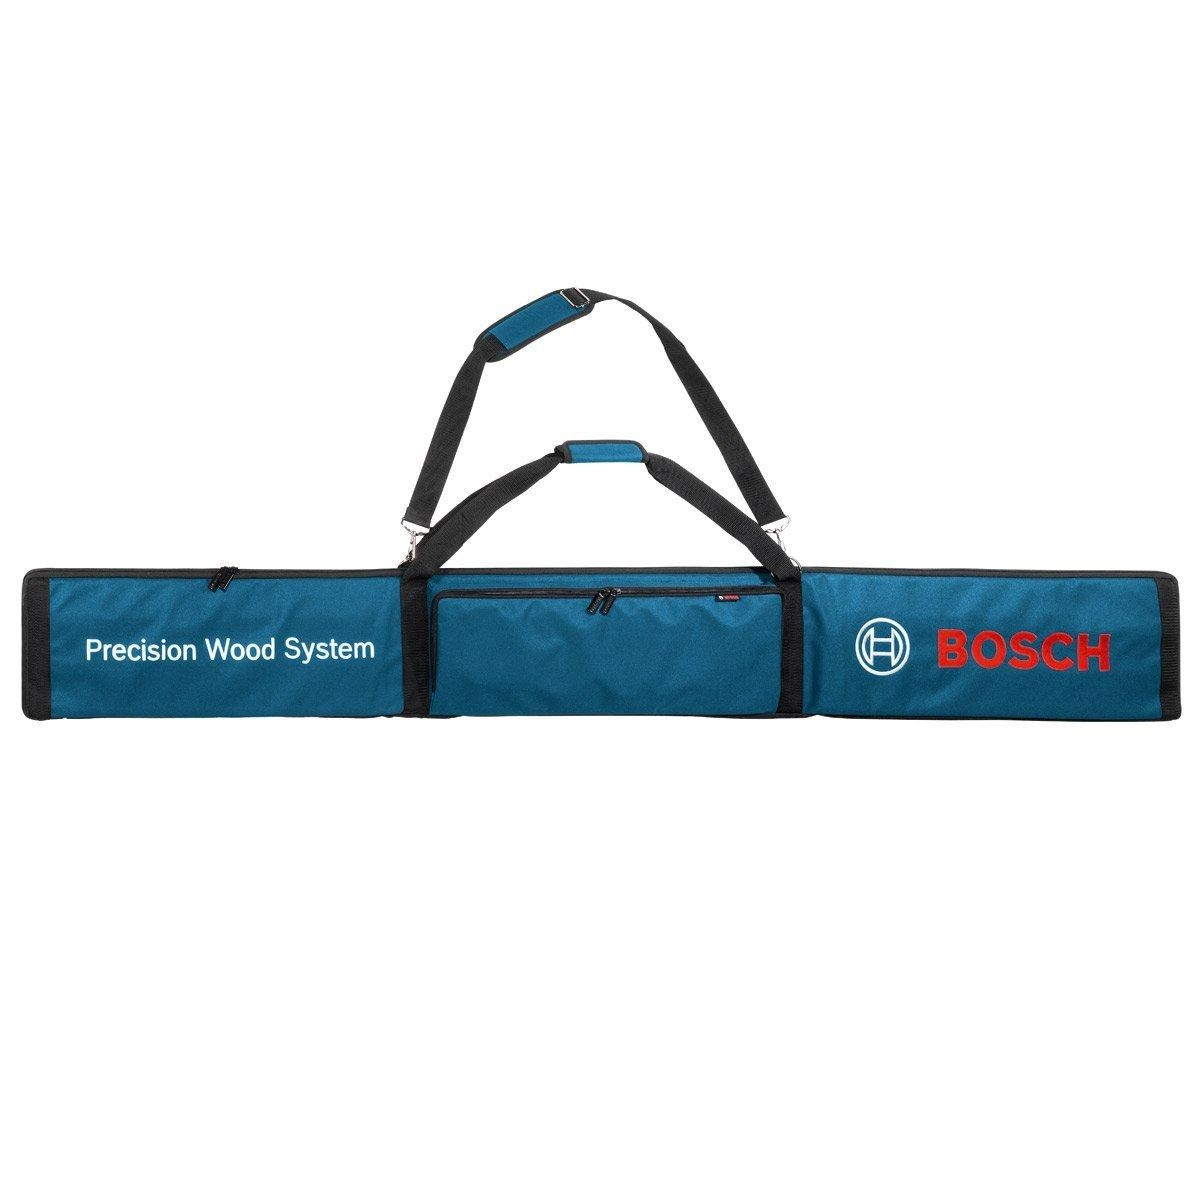 BOSCH FSN BAG Professional